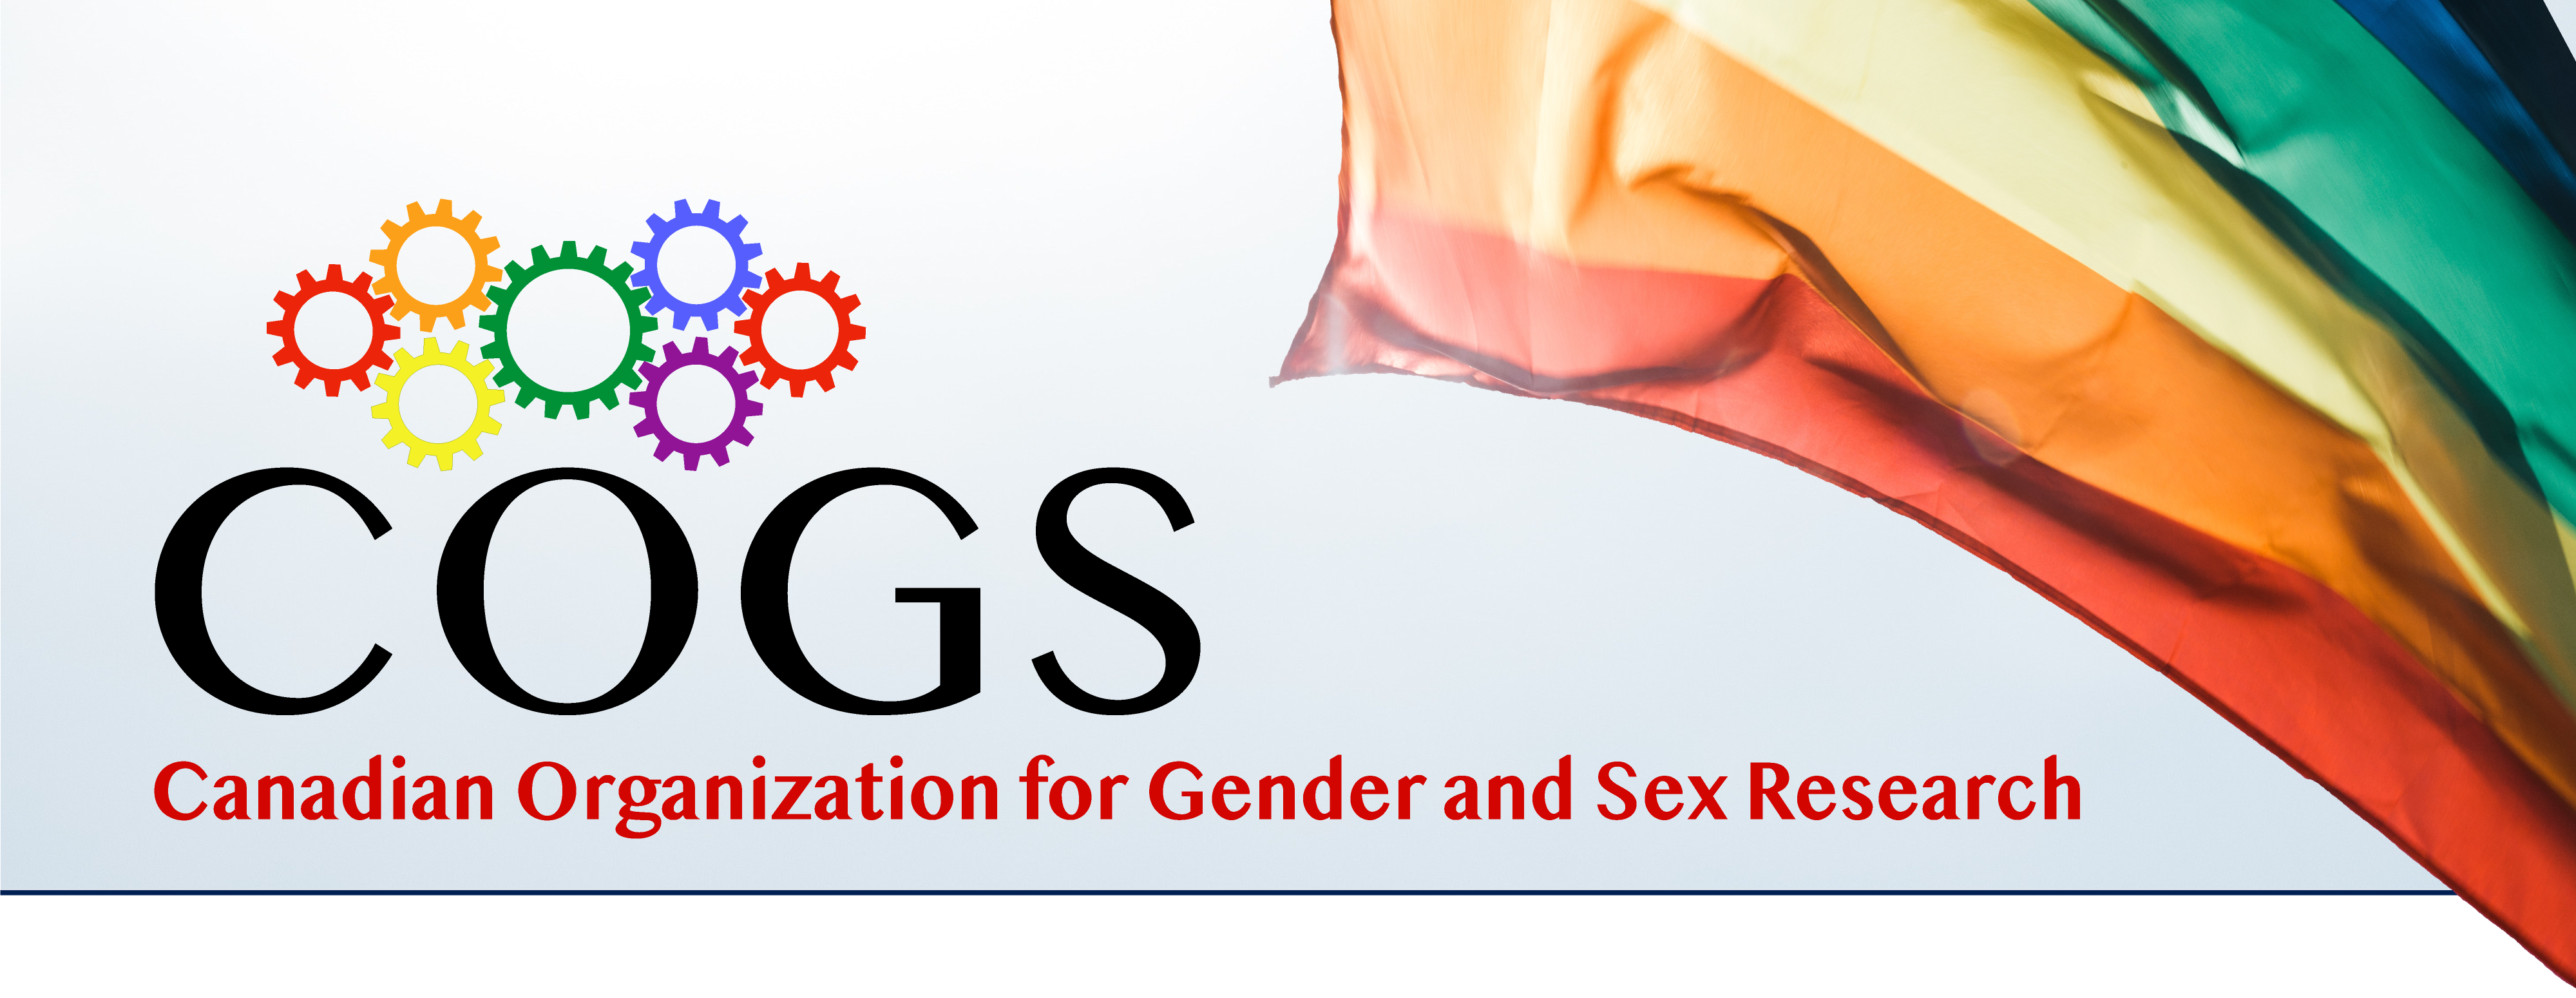 Canadian Organization for Gender and Sex Research (COGS)